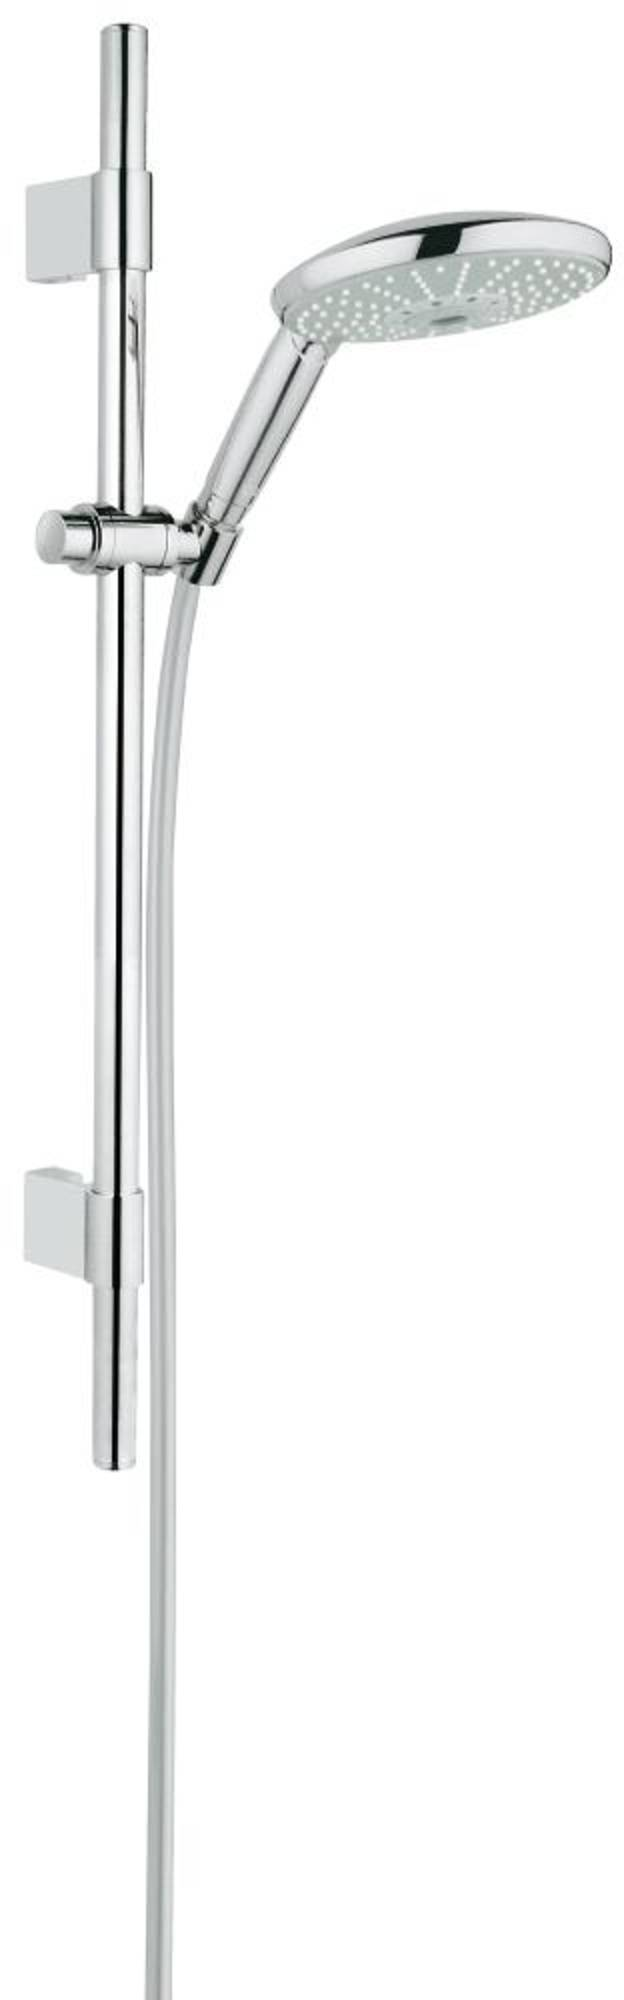 Grohe Rainshower glijstangcombinatie 600mm chroom 28768001